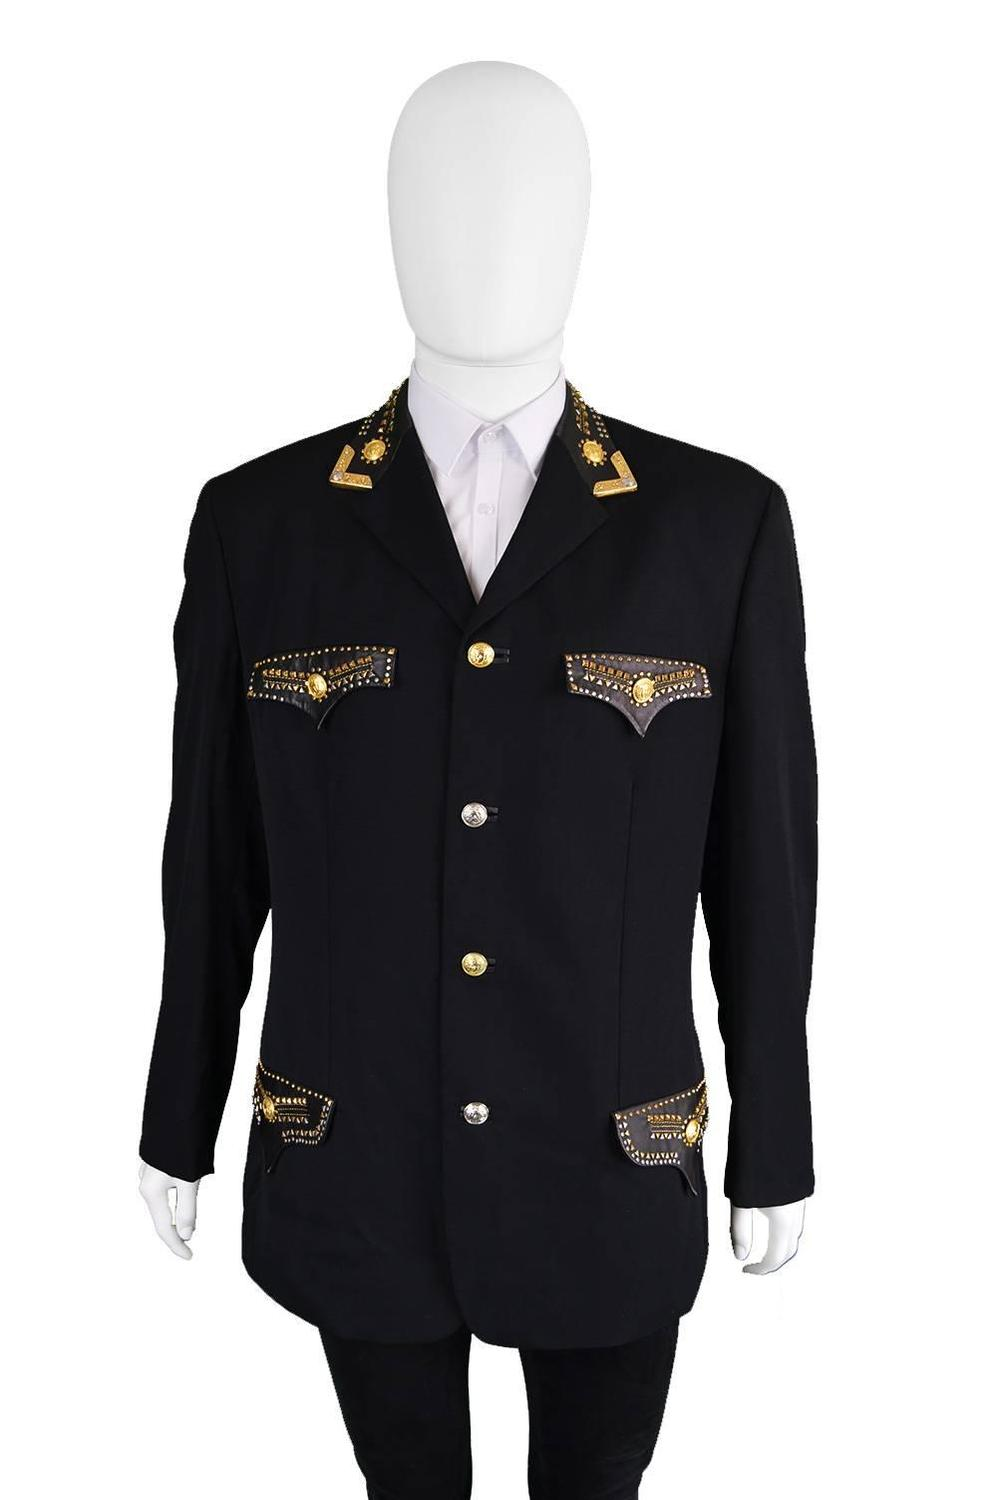 Gianni Versace 1992 Mens Wool And Leather Studded Jacket